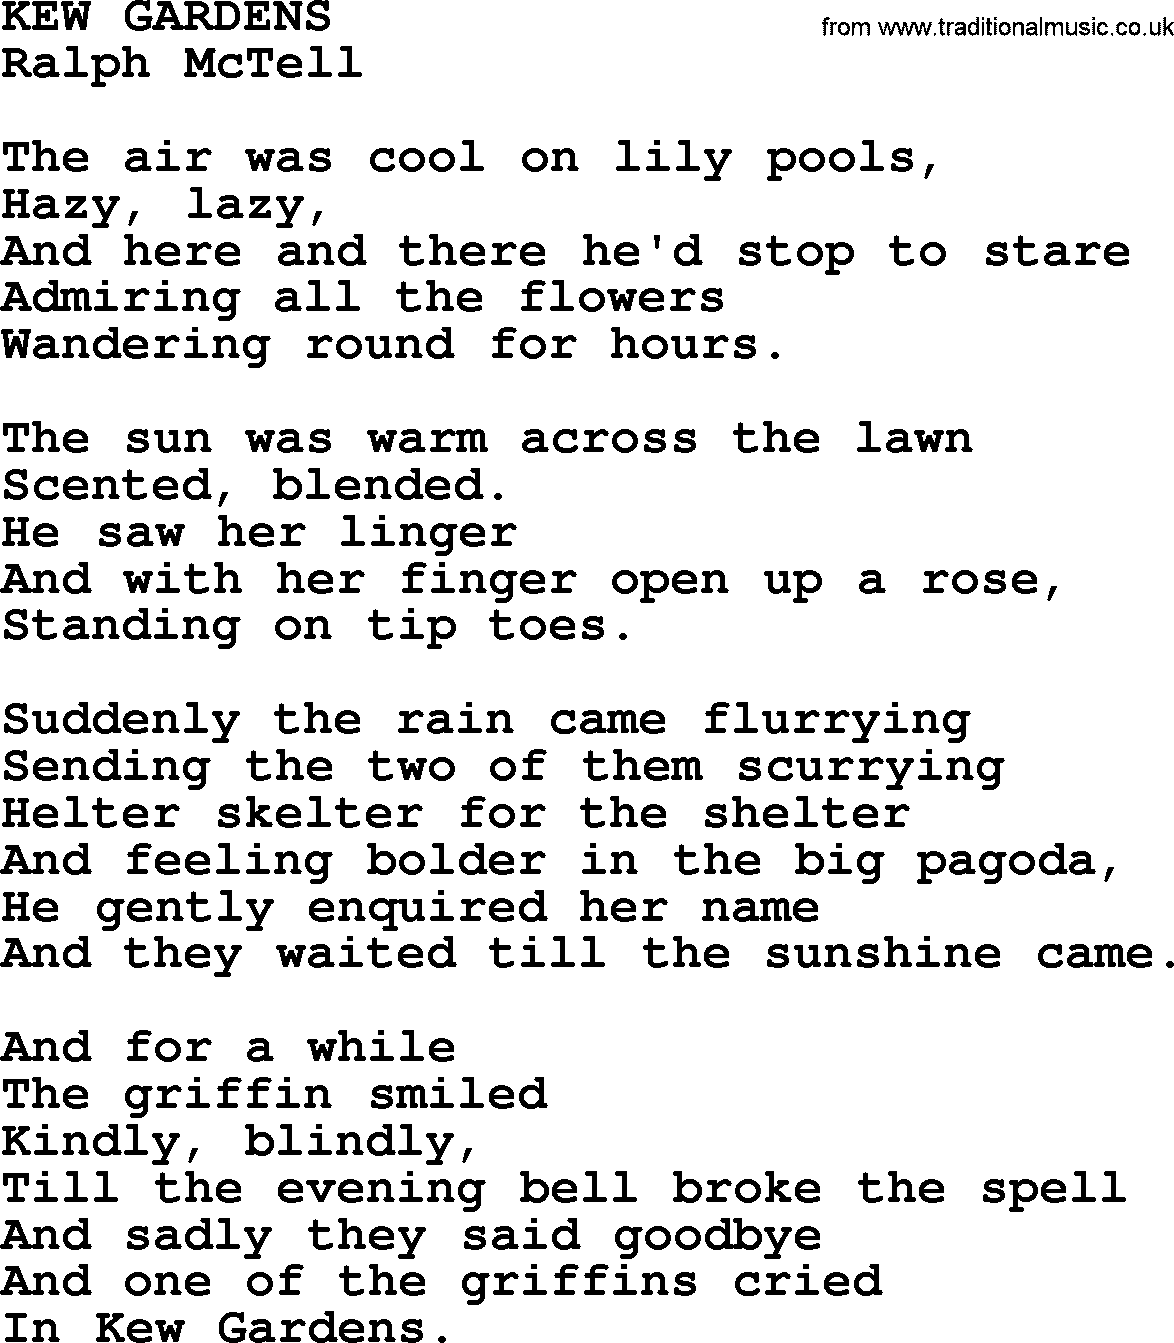 Kew gardenstxt by ralph mctell lyrics and chords ralph mctell song kew gardens lyrics hexwebz Image collections